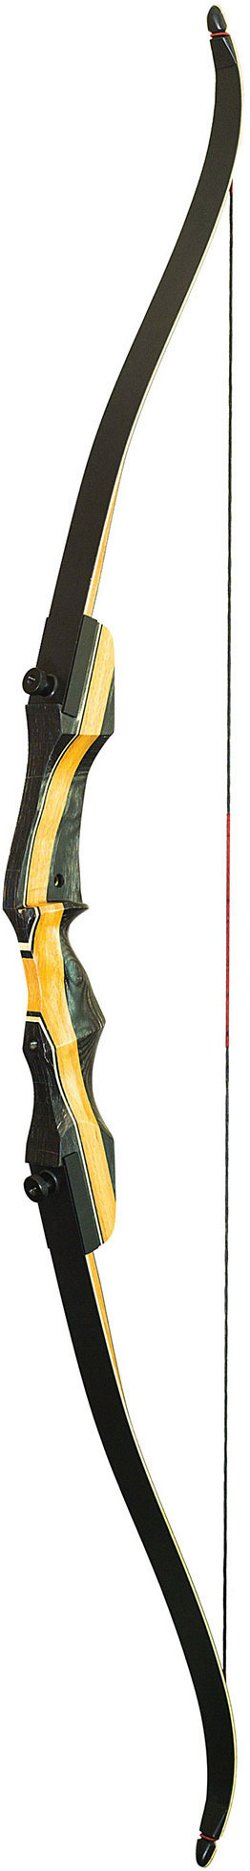 PSE Heritage Series Night Hawk Recurve Bow